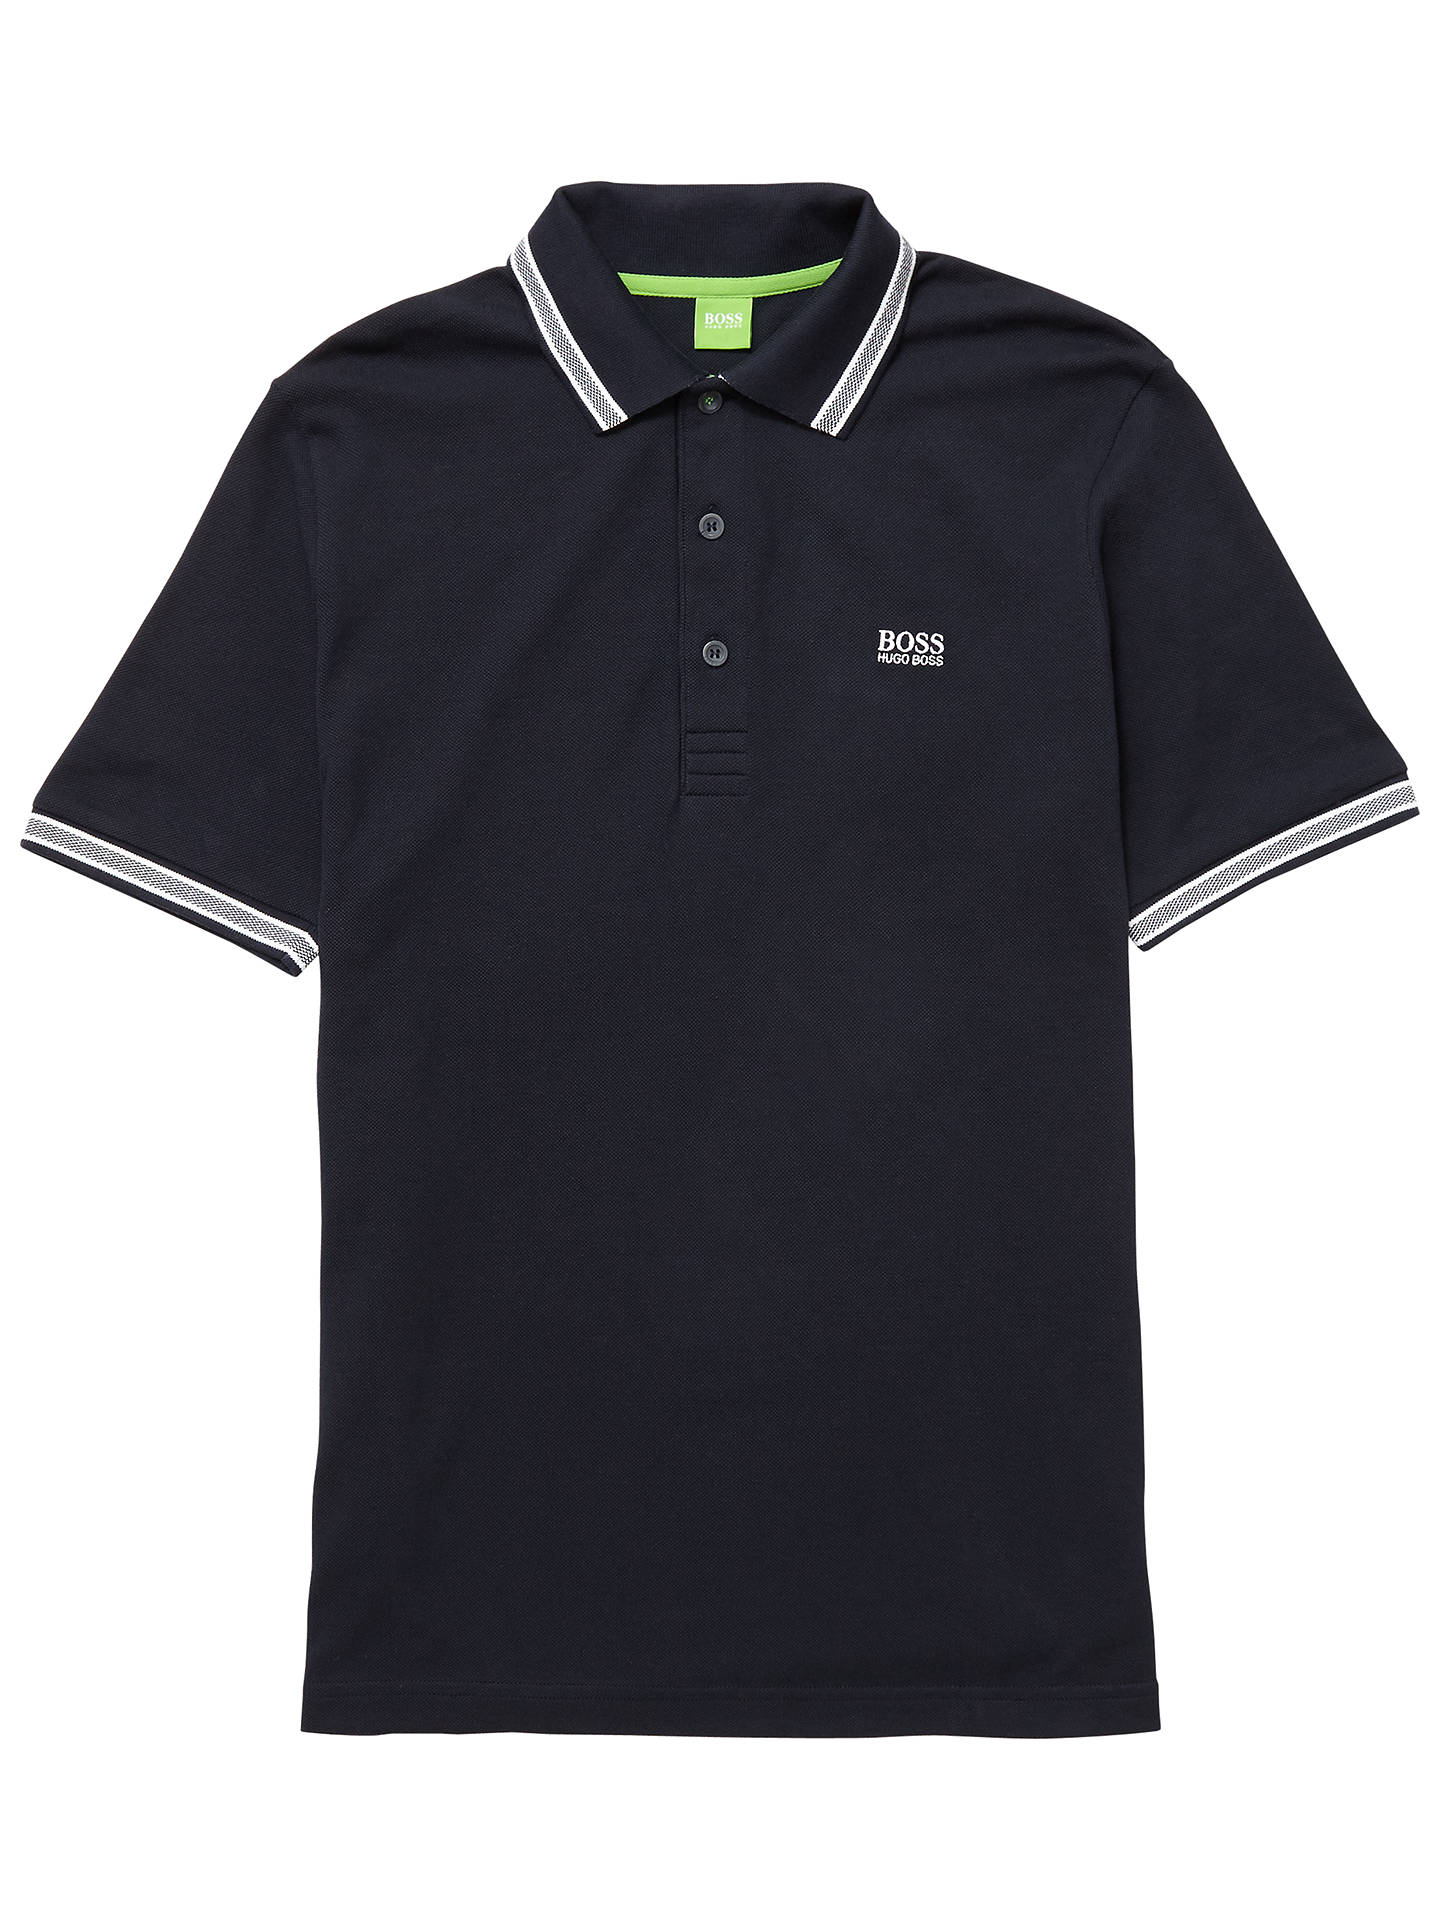 3c2a37998 BOSS Green Paddy Polo Shirt at John Lewis & Partners